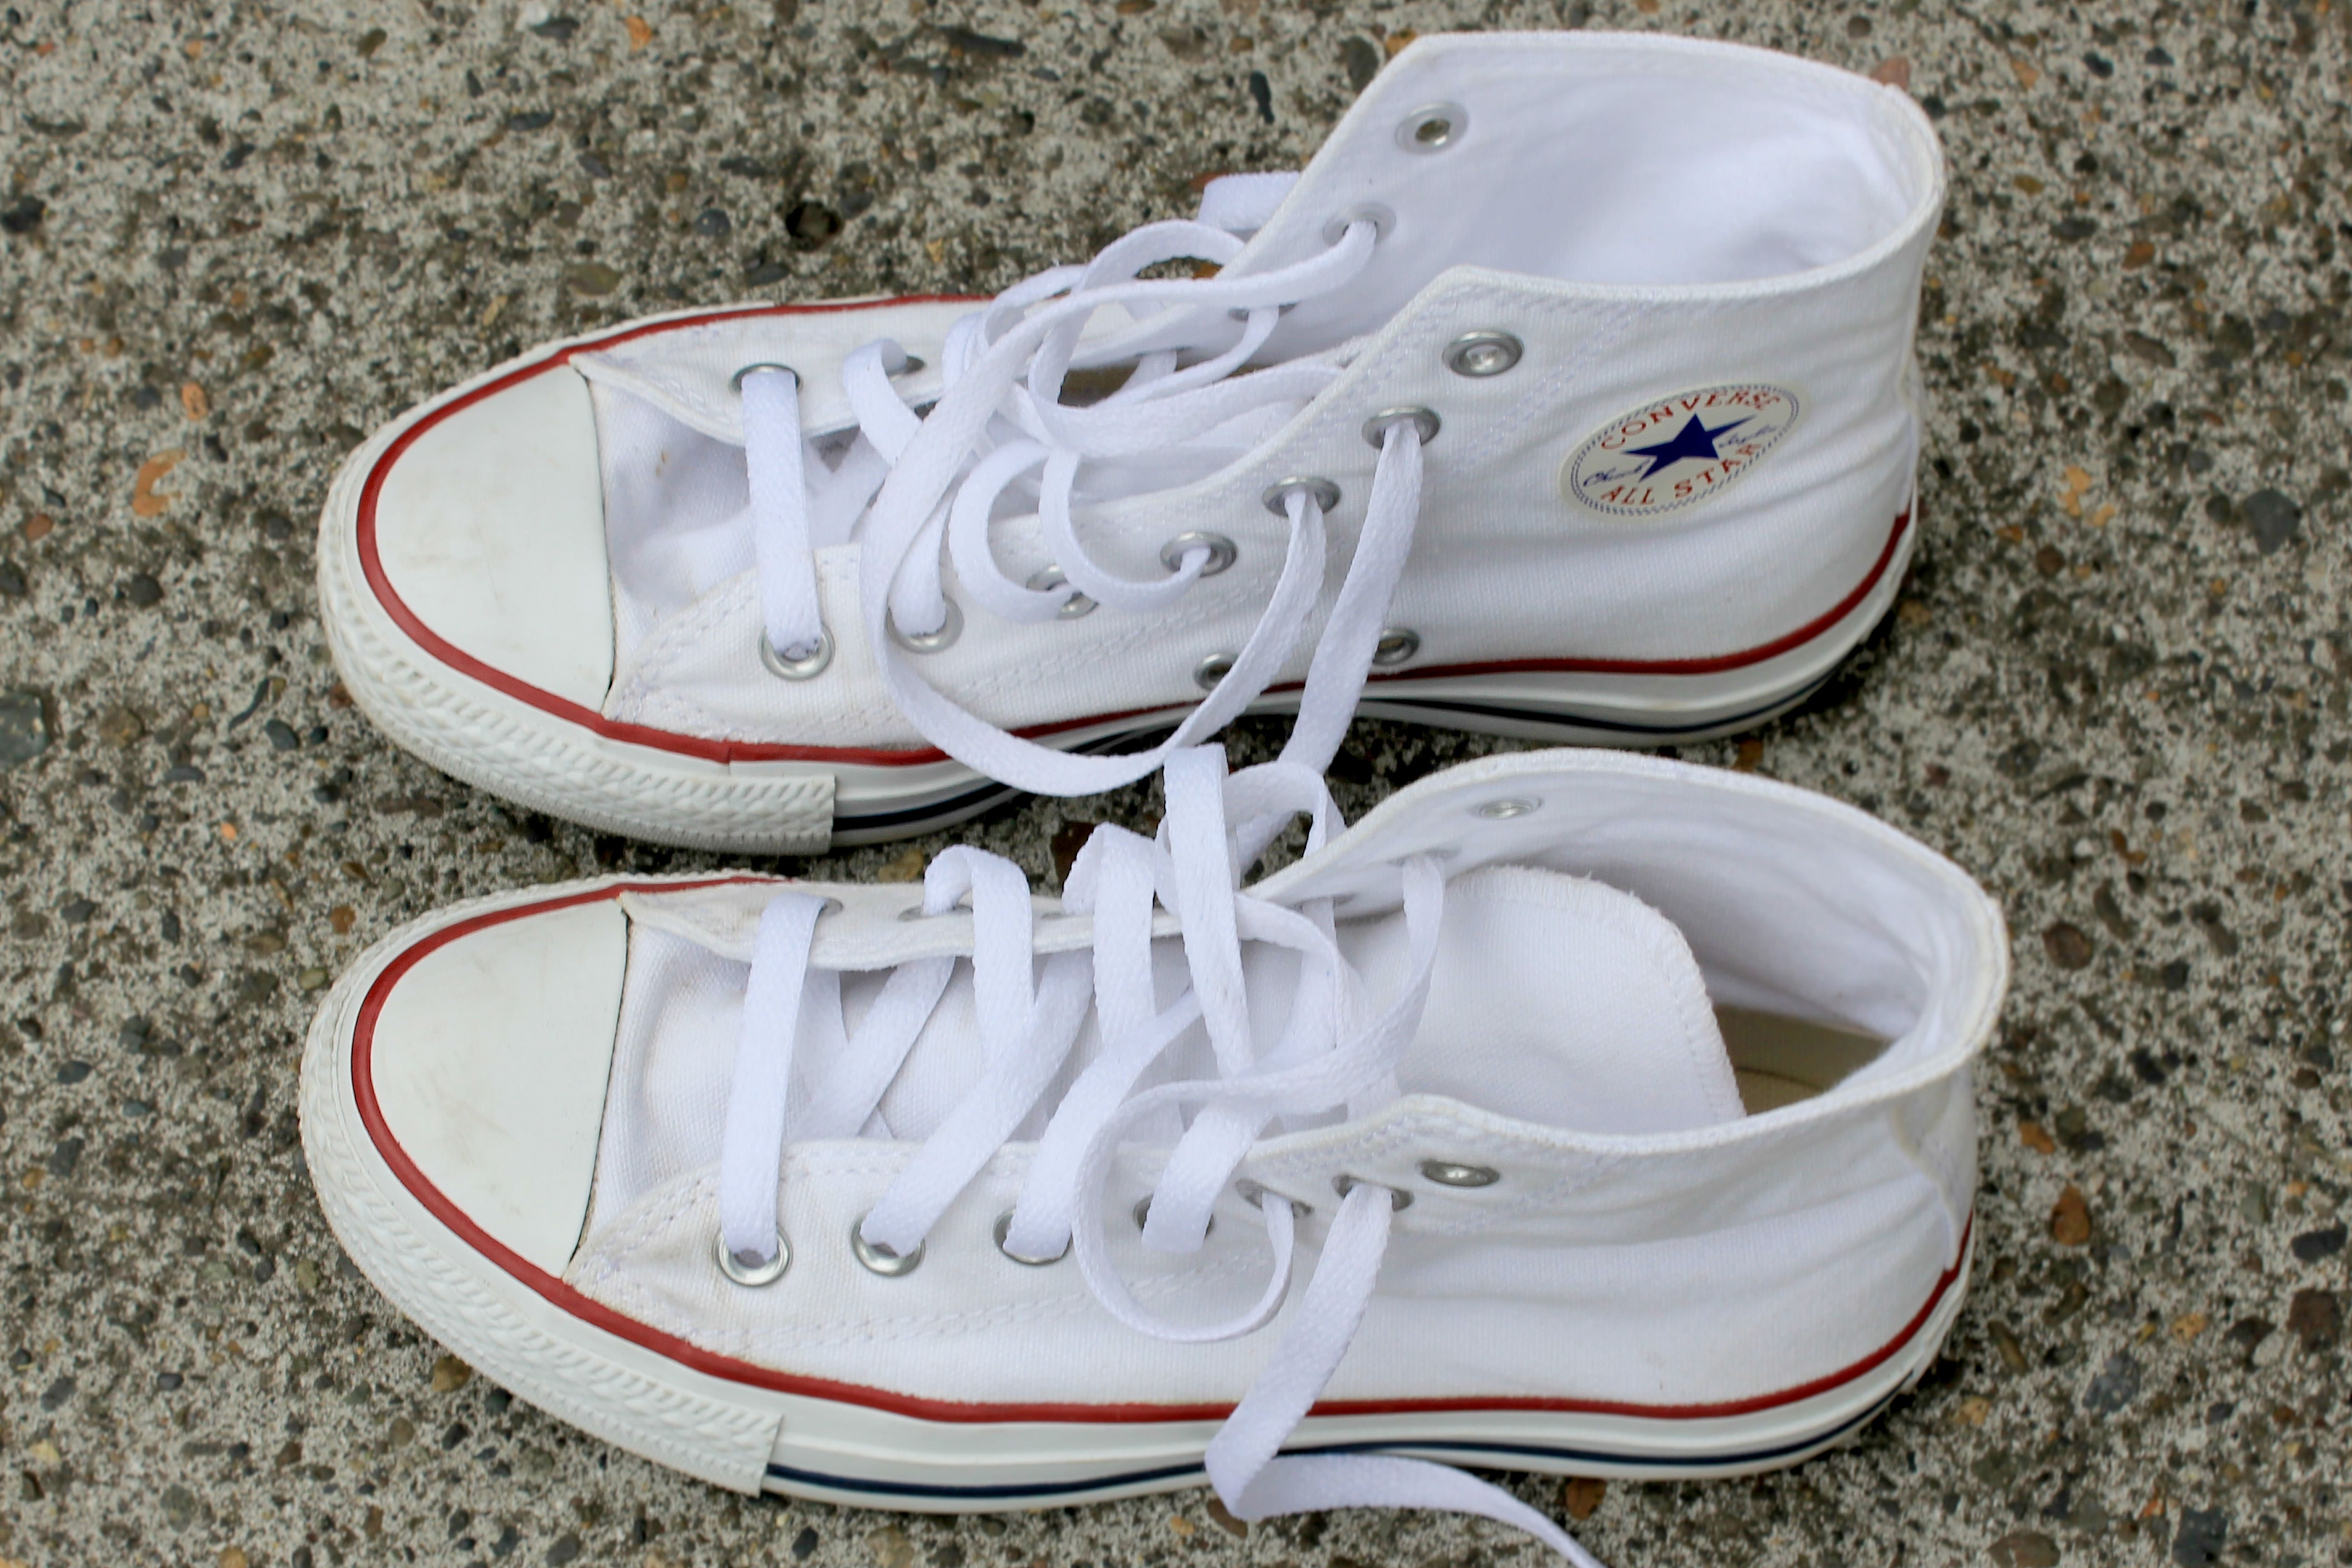 How To Clean White Converse Ehow How To Clean White Converse How To Wash Sneakers White Converse Shoes